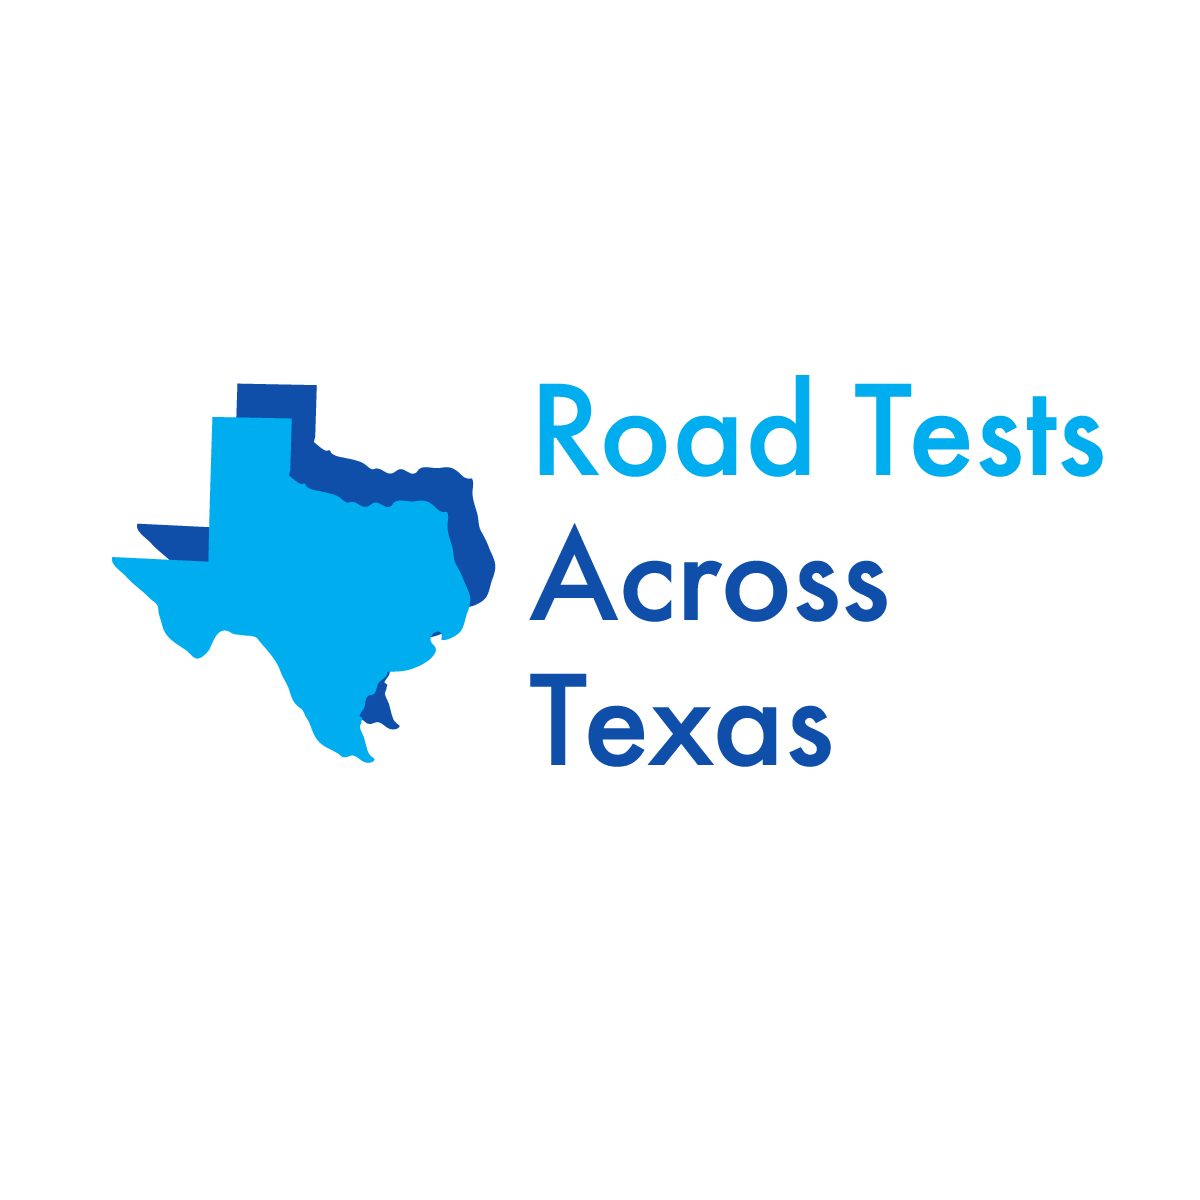 Car and Driver for Texas Driver's License Road Test